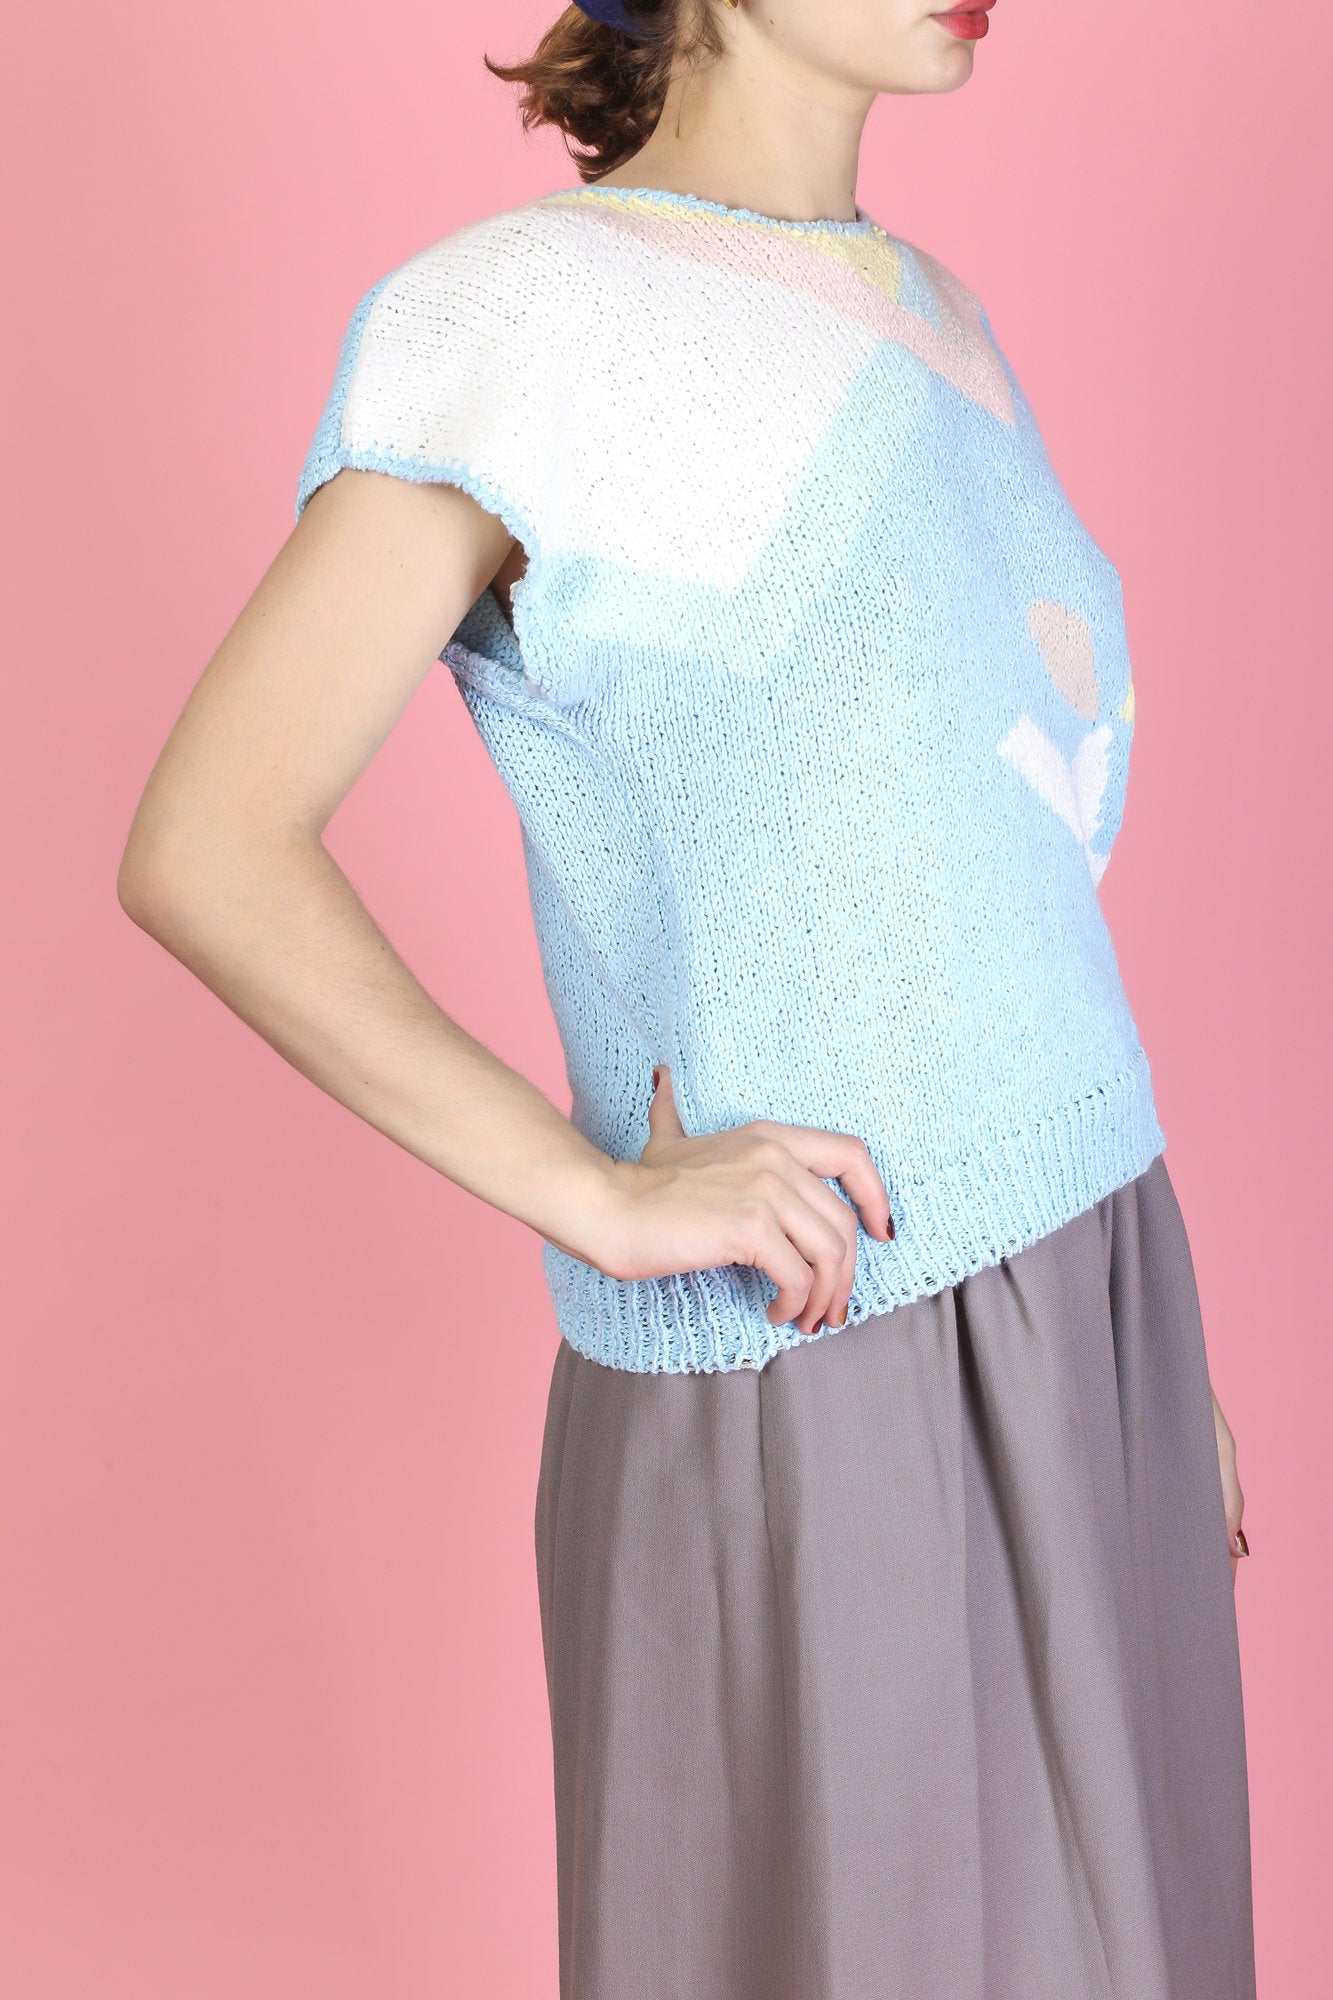 80s Cap Sleeve Knit Top - Small